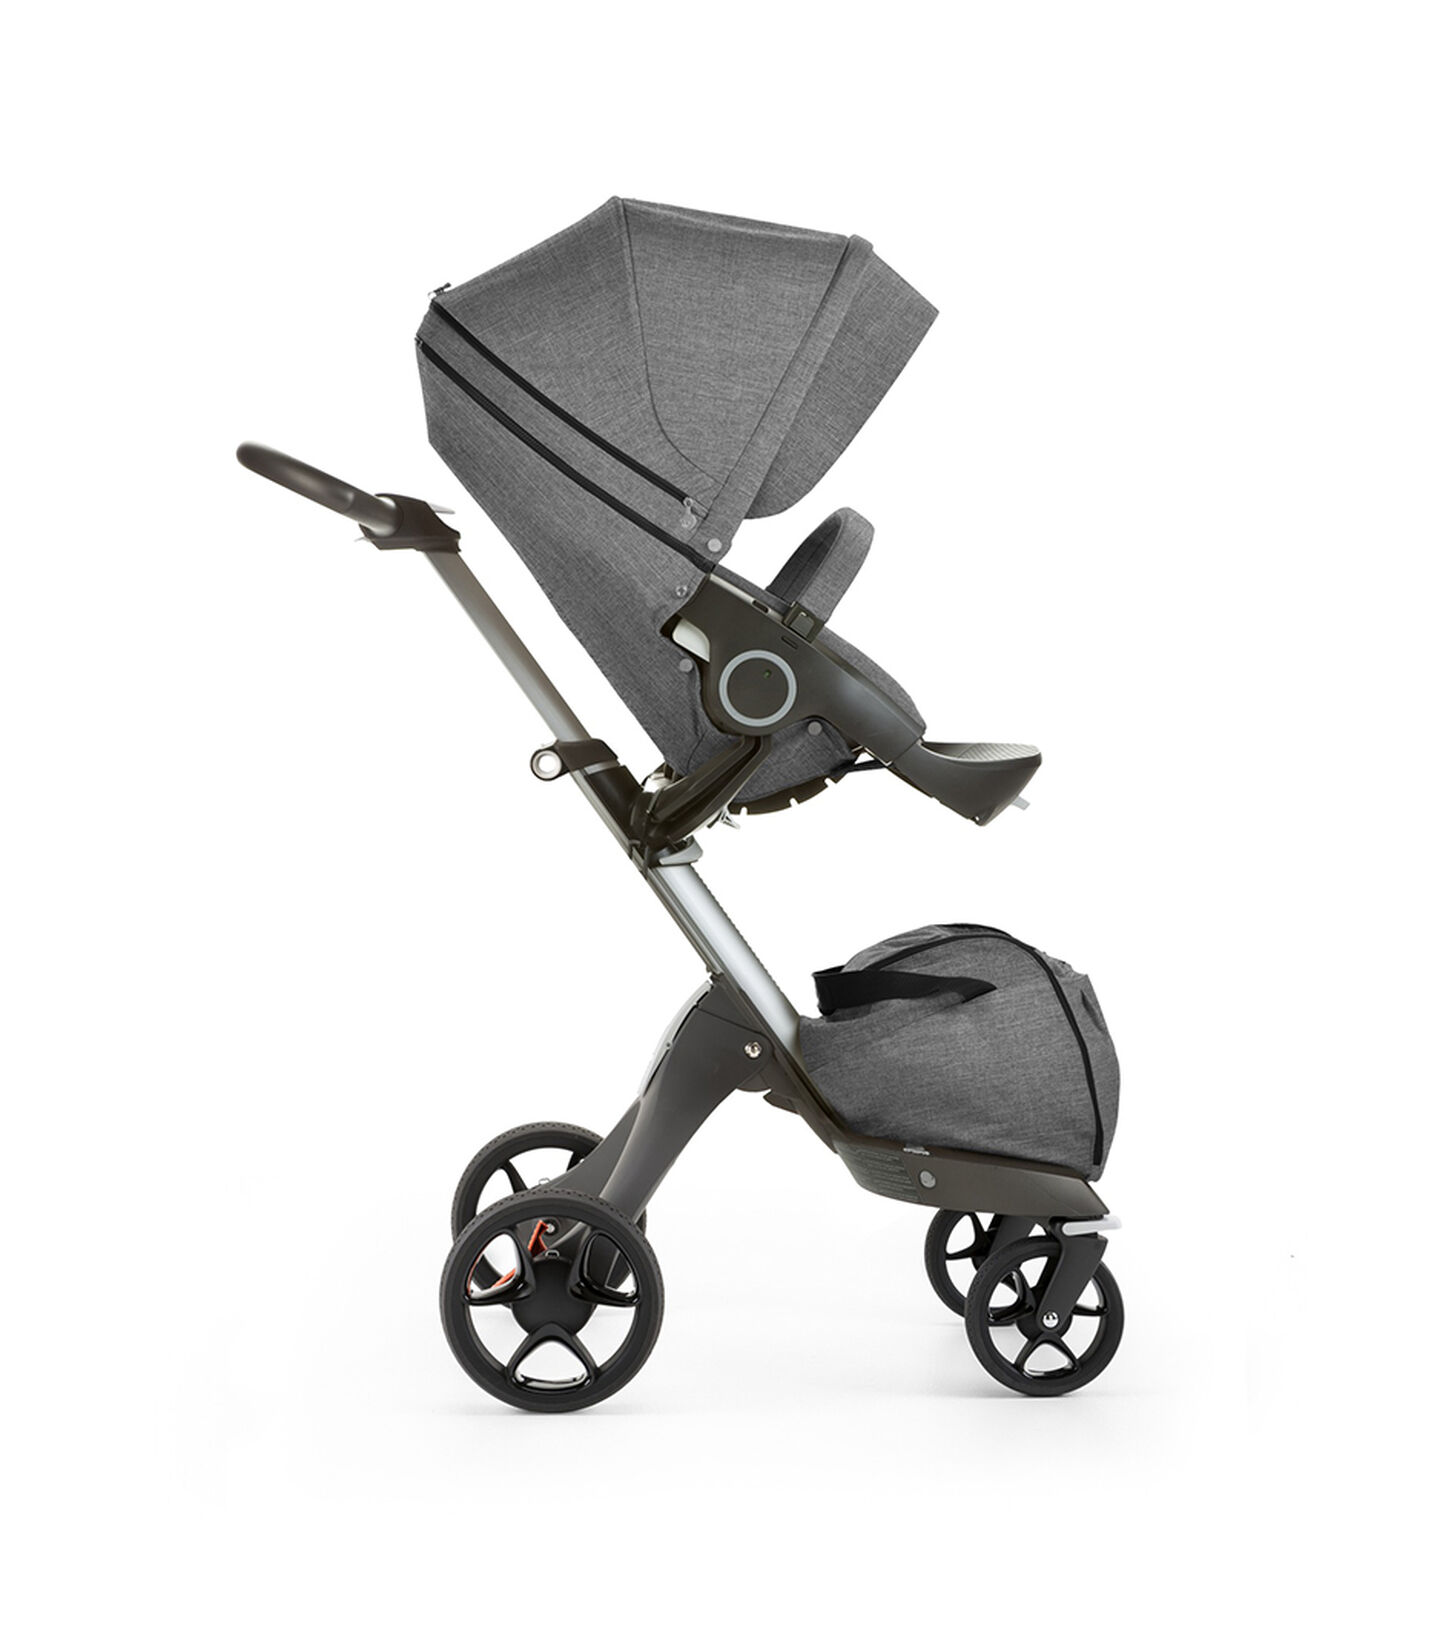 Stokke® Xplory® with Stokke® Stroller Seat, forward facing, rest position. Black Melange. New wheels 2016.